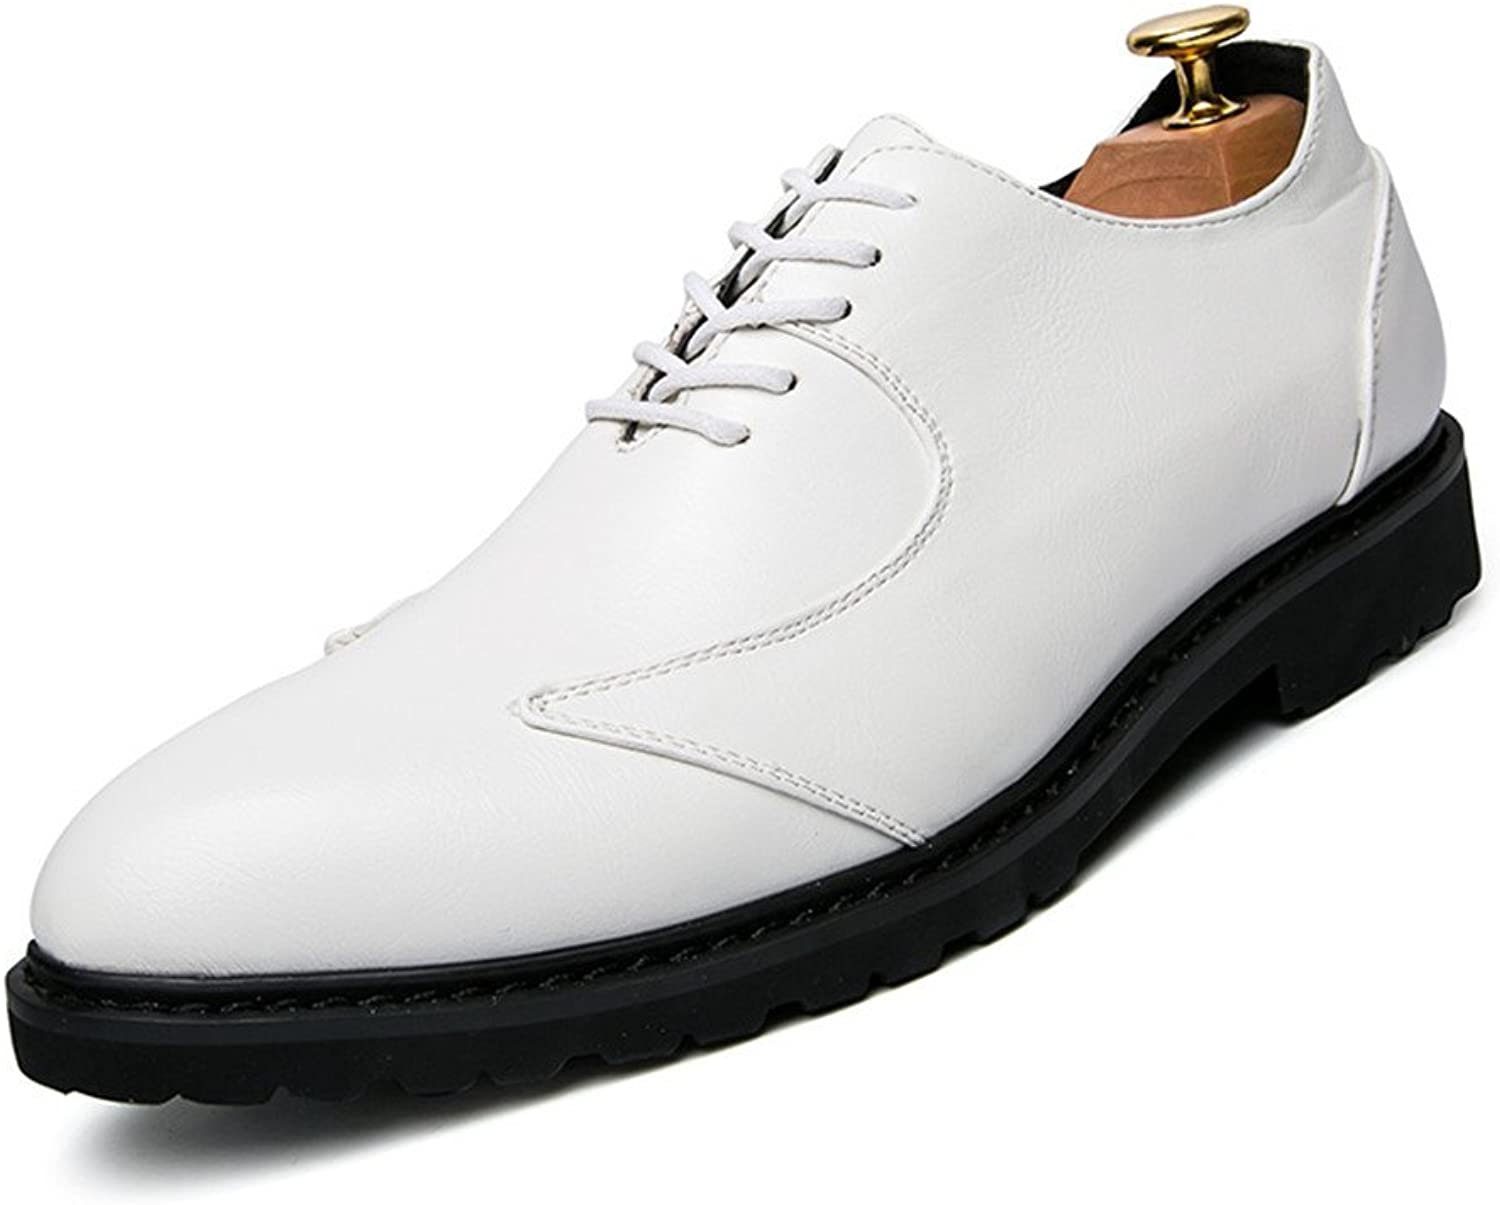 Men's Business Oxford Casual Soft Breathable Low Tip Retro British Style Formal shoes Cricket shoes